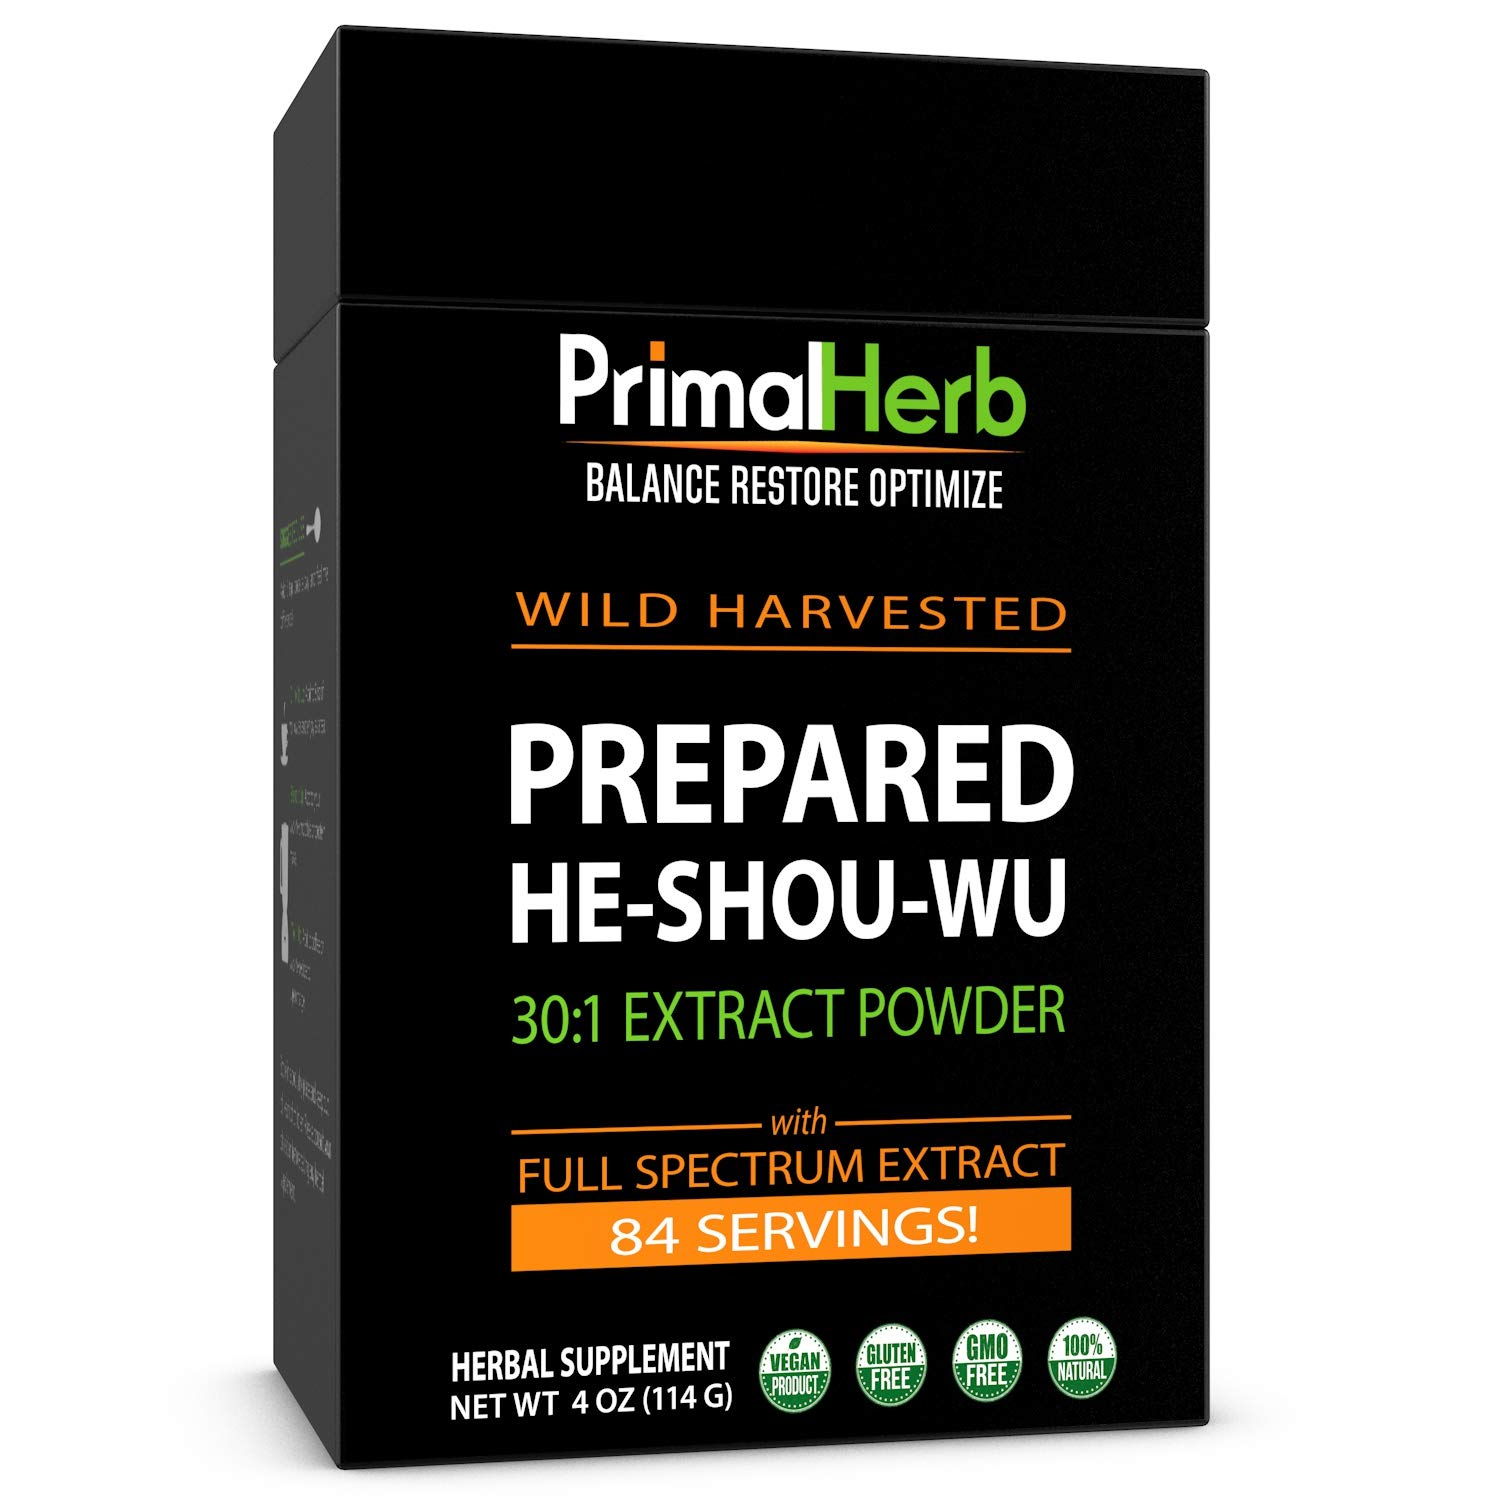 He Shou Wu Fo ti Root Extract Powder - by Primal Herb | Longevity Tea - Supports Hair Growth & Glowing Skin | Organic Potent 30:1-84 Servings - Aged Roots | Includes Bamboo Spoon by Primal Herb (Image #1)